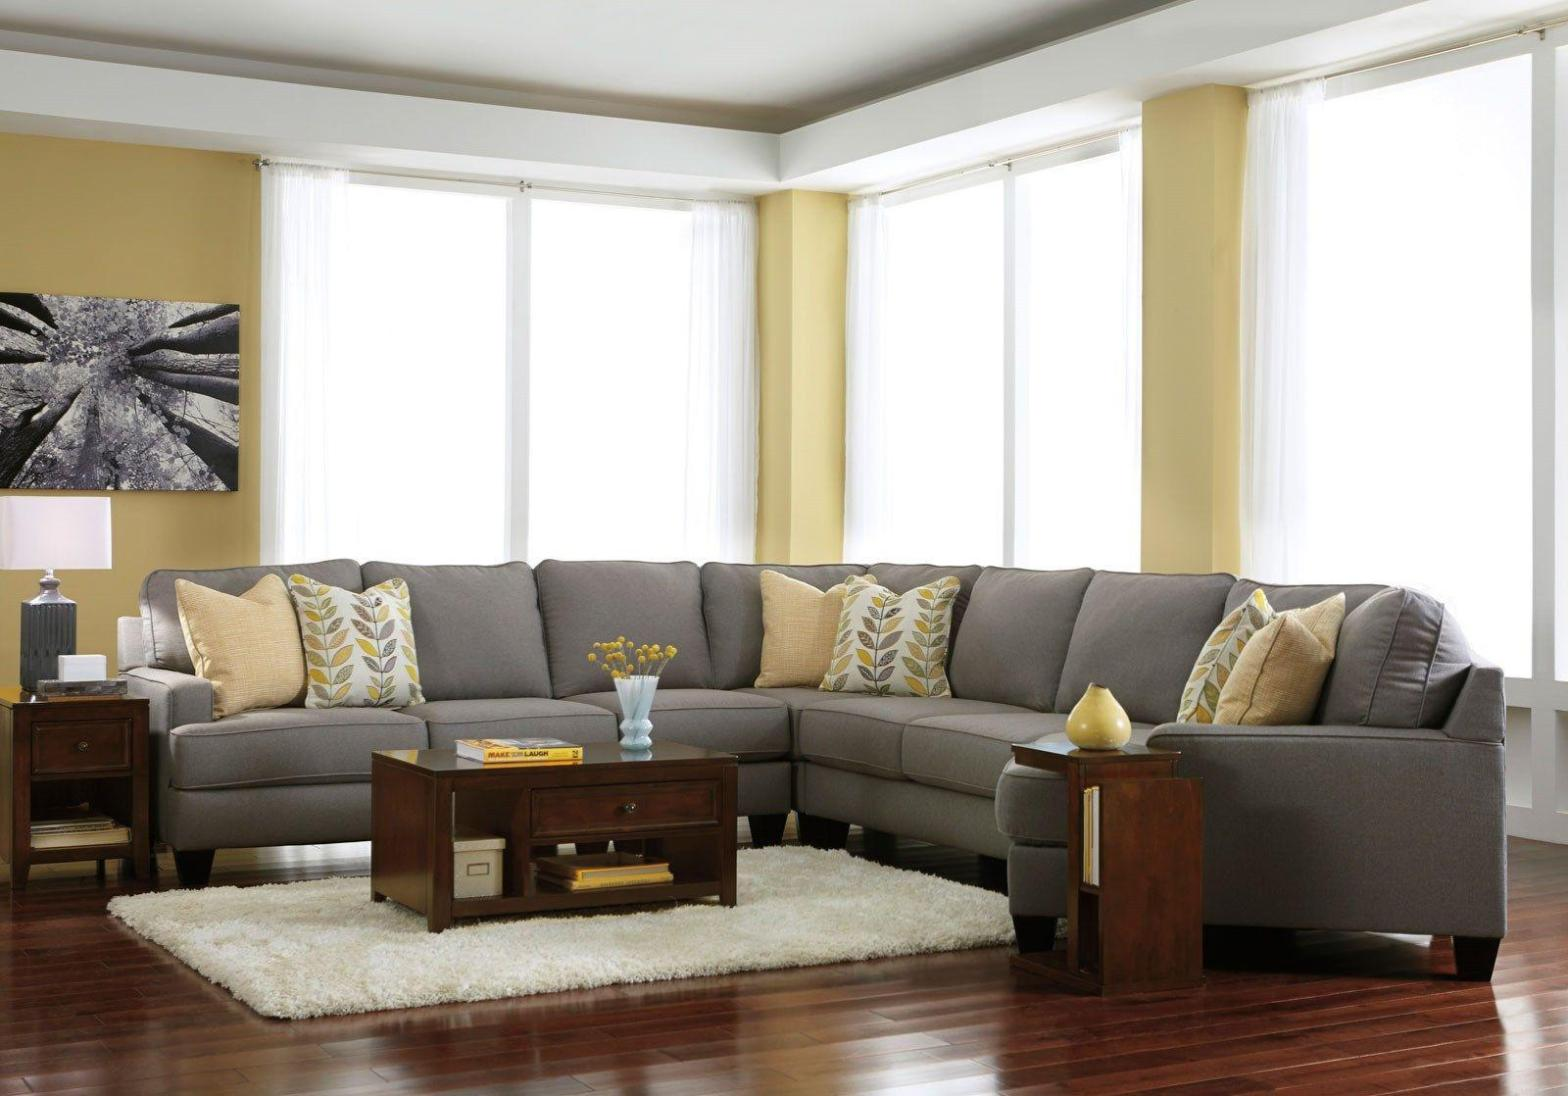 Image of: Microfiber Sectional Couch With Chaise